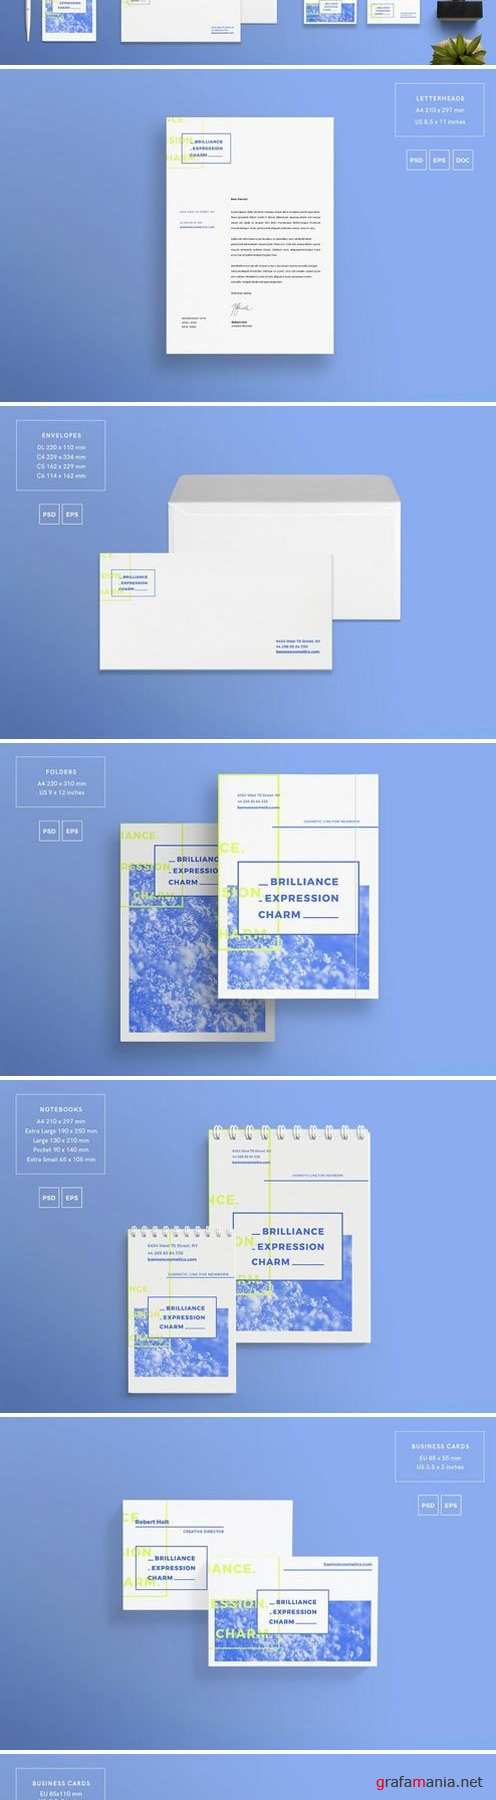 Branding Pack | Brilliance 1596937